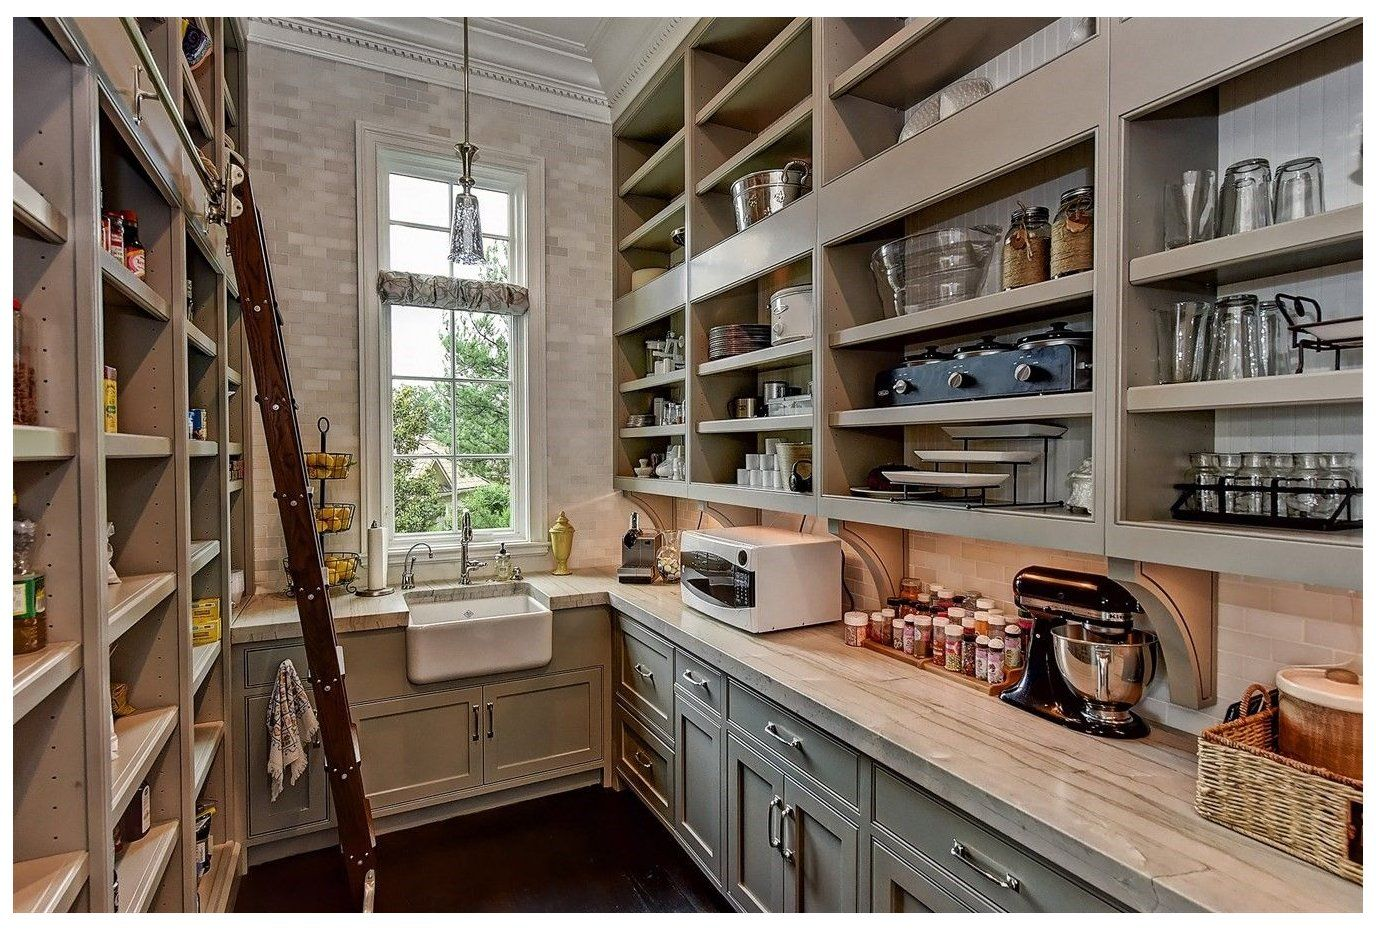 Walk In Pantry With Sink Walk In Pantry With A Place For Everything Food Glassware China An In 2020 Pantry Design Kitchen Pantry Design Kitchen Butlers Pantry